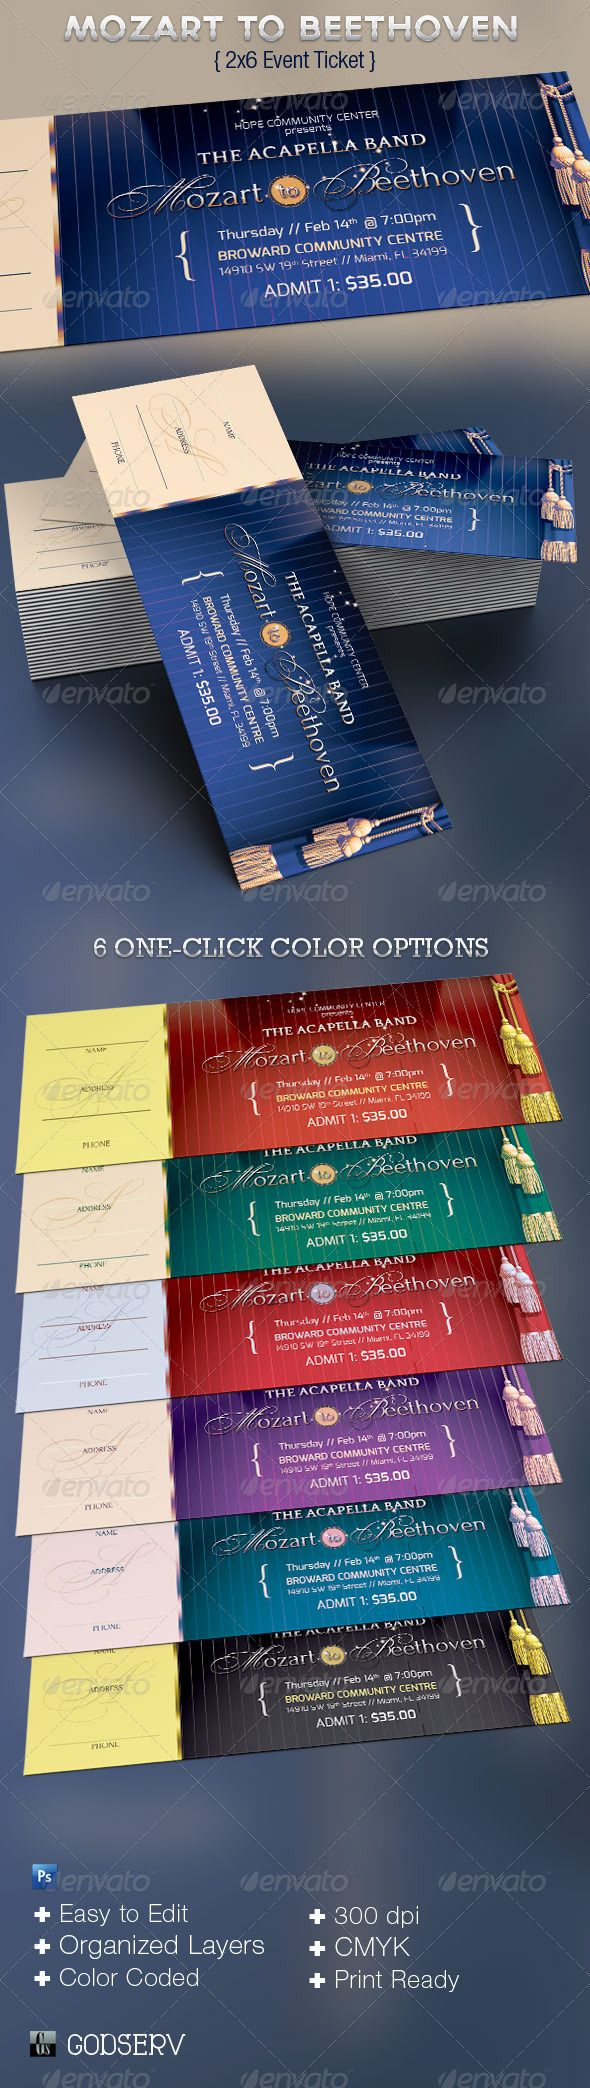 Mozart to Beethoven Event Ticket Template - $6.00